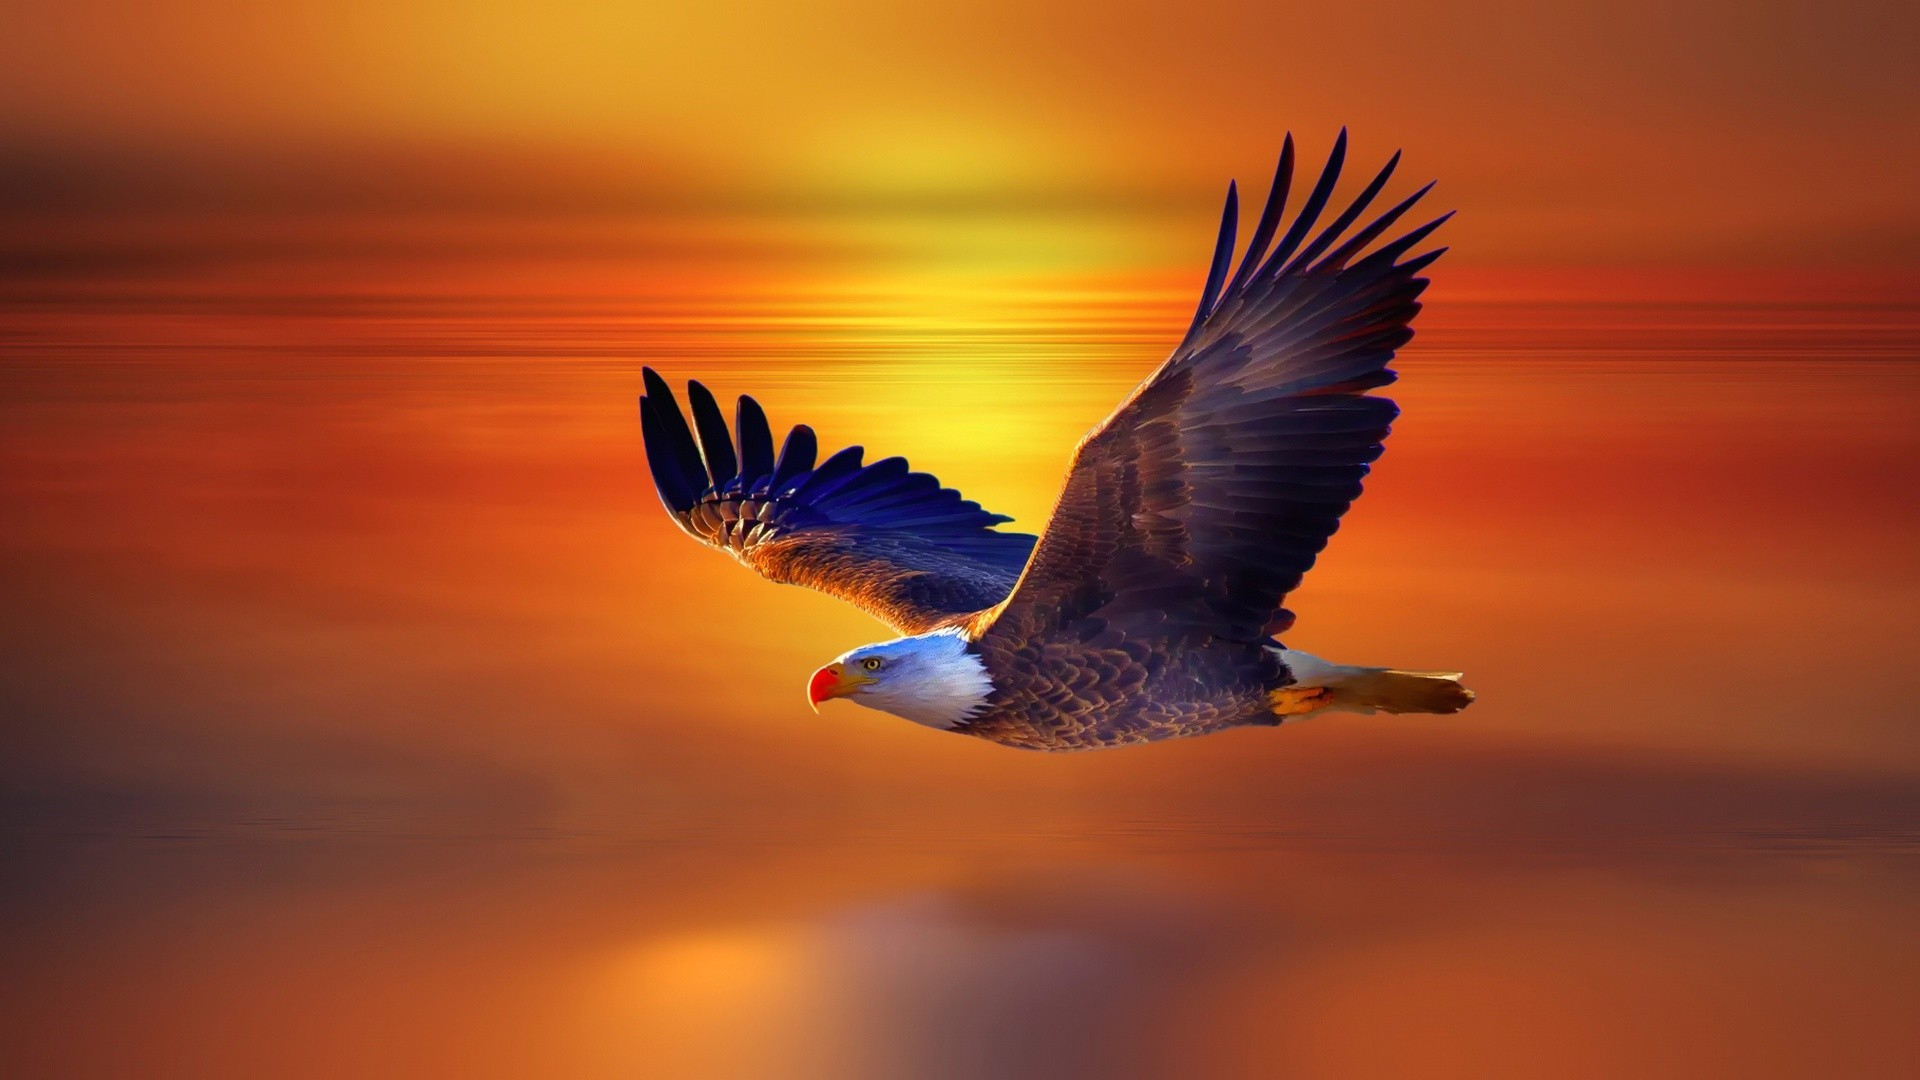 1920x1080 Image-for-Eagle-Wallpaper-Free-1